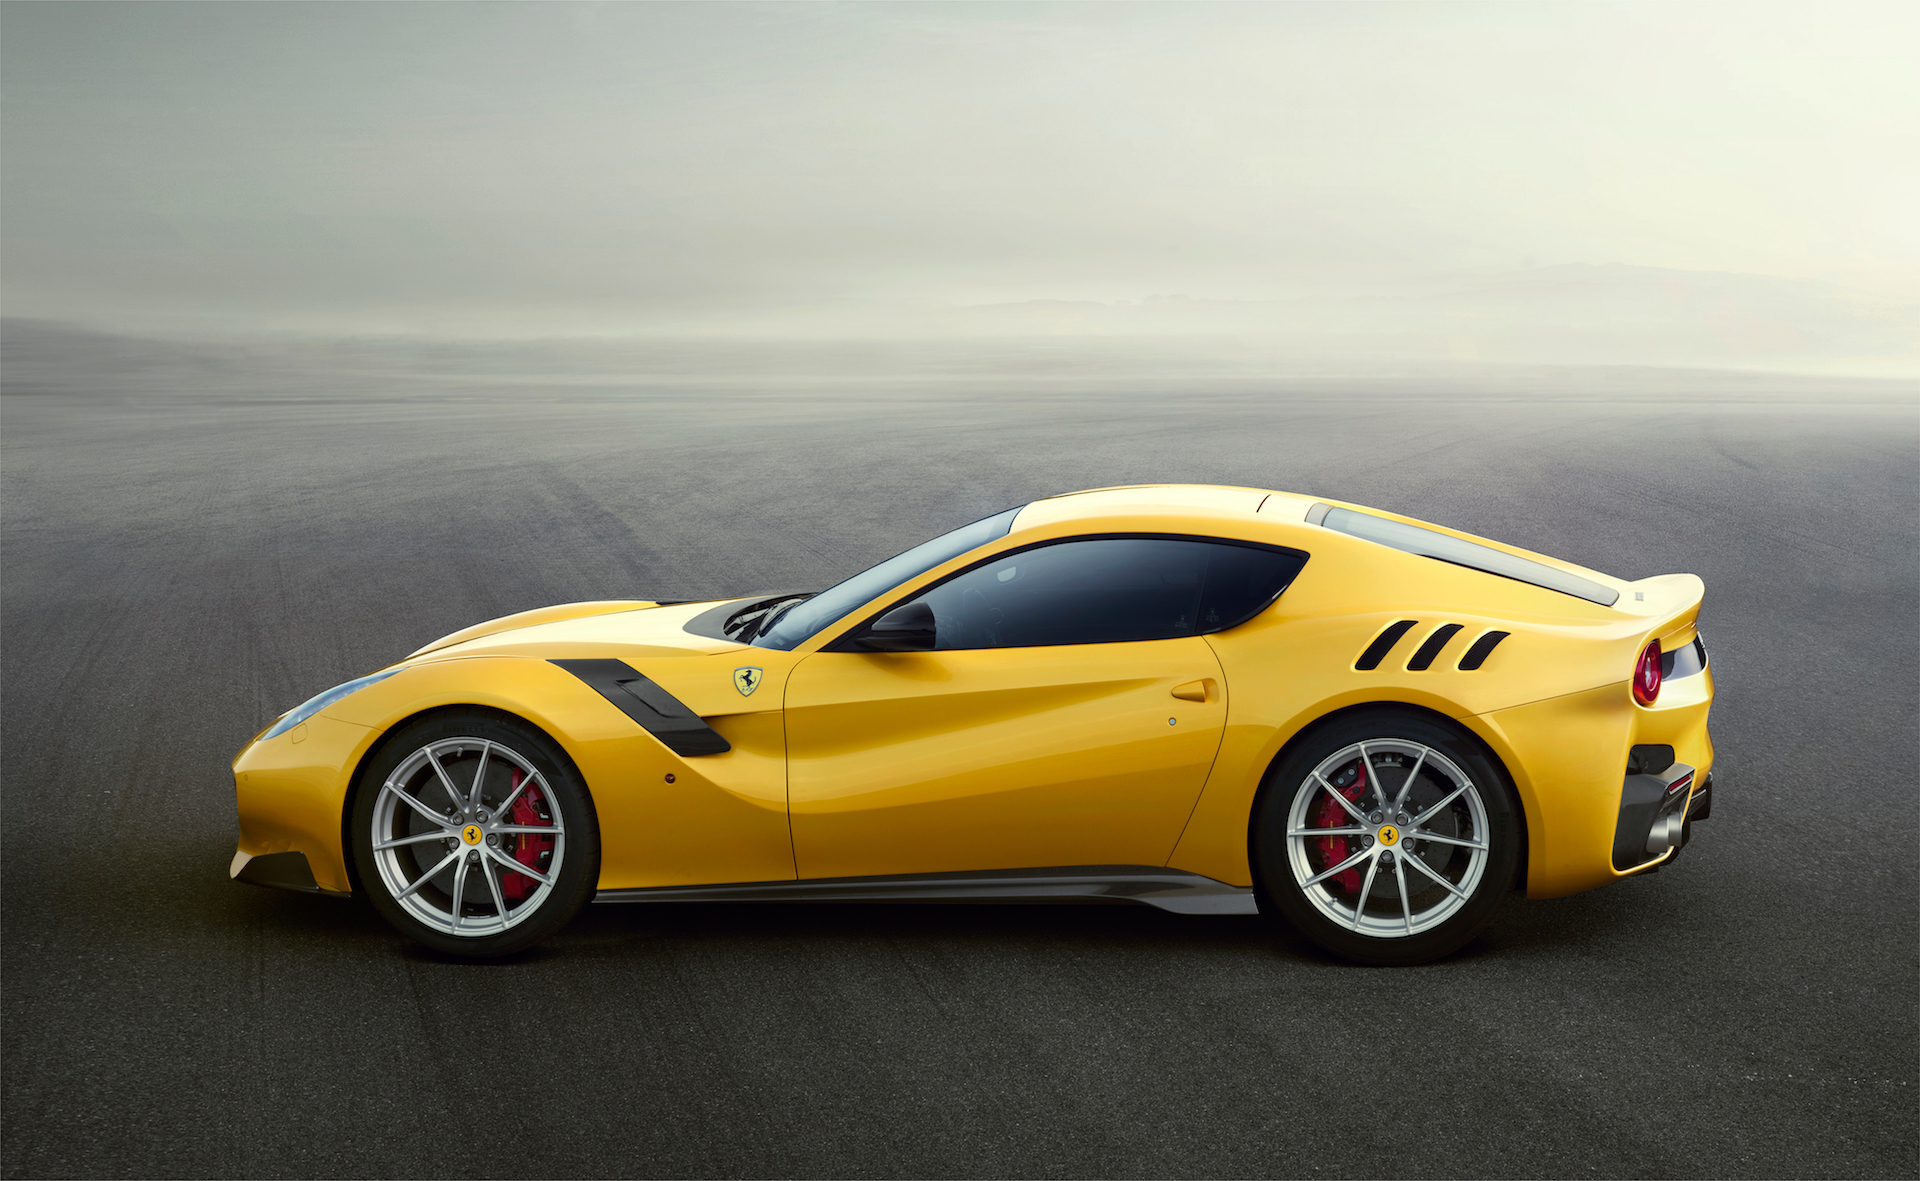 2017 Ferrari F12 Berlinetta Review, Ratings, Specs, Prices